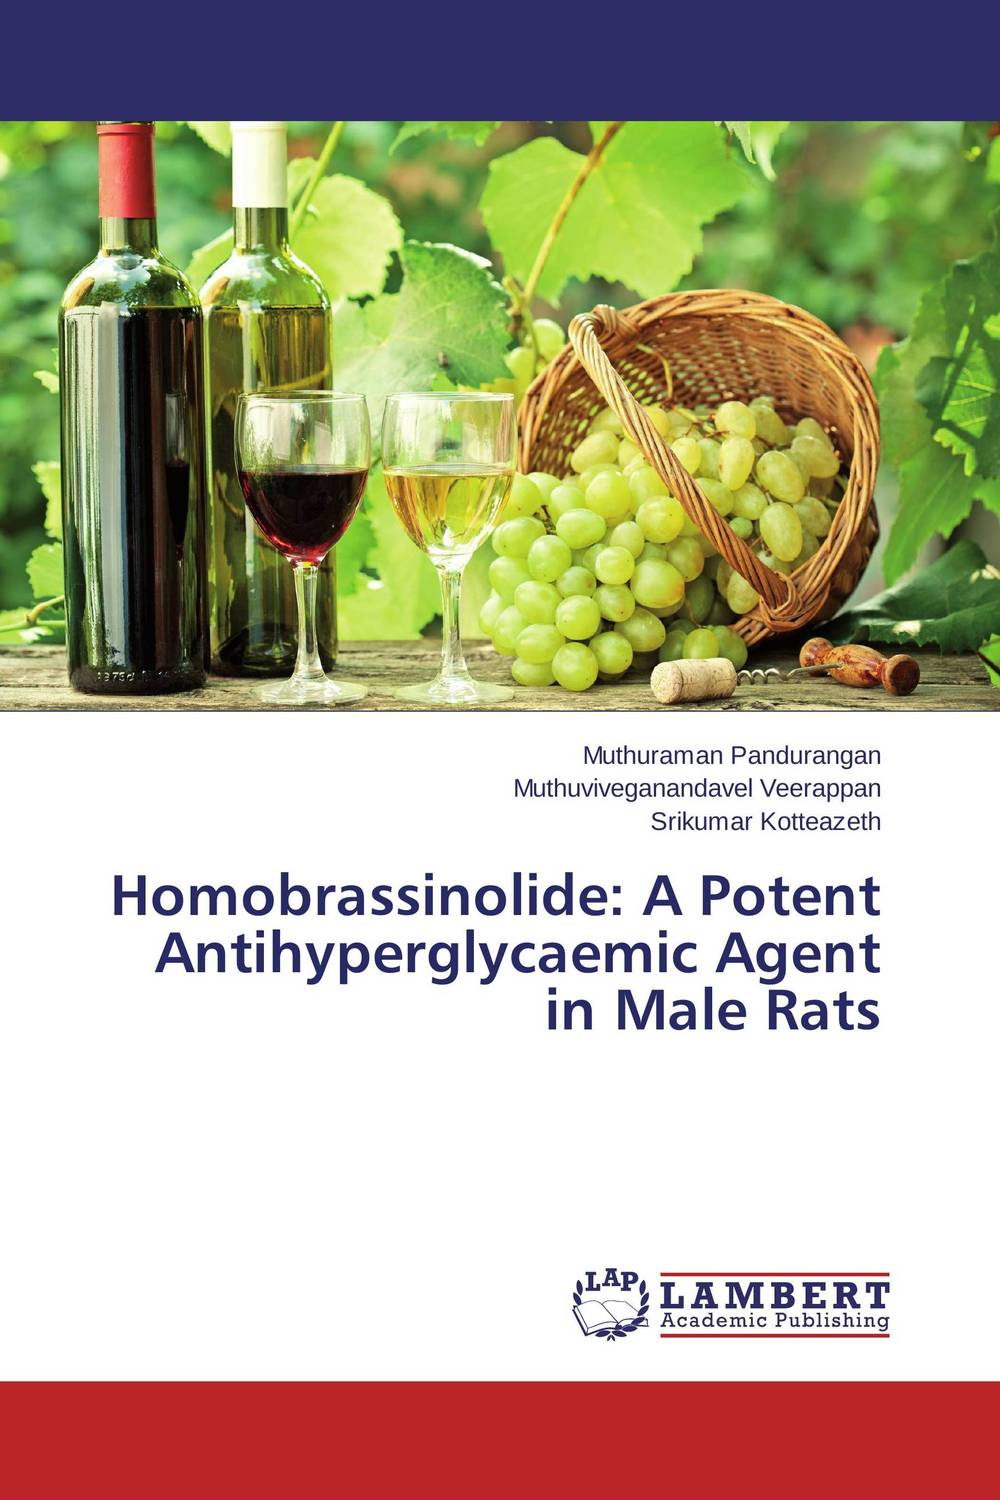 Homobrassinolide: A Potent Antihyperglycaemic Agent in Male Rats the role of evaluation as a mechanism for advancing principal practice